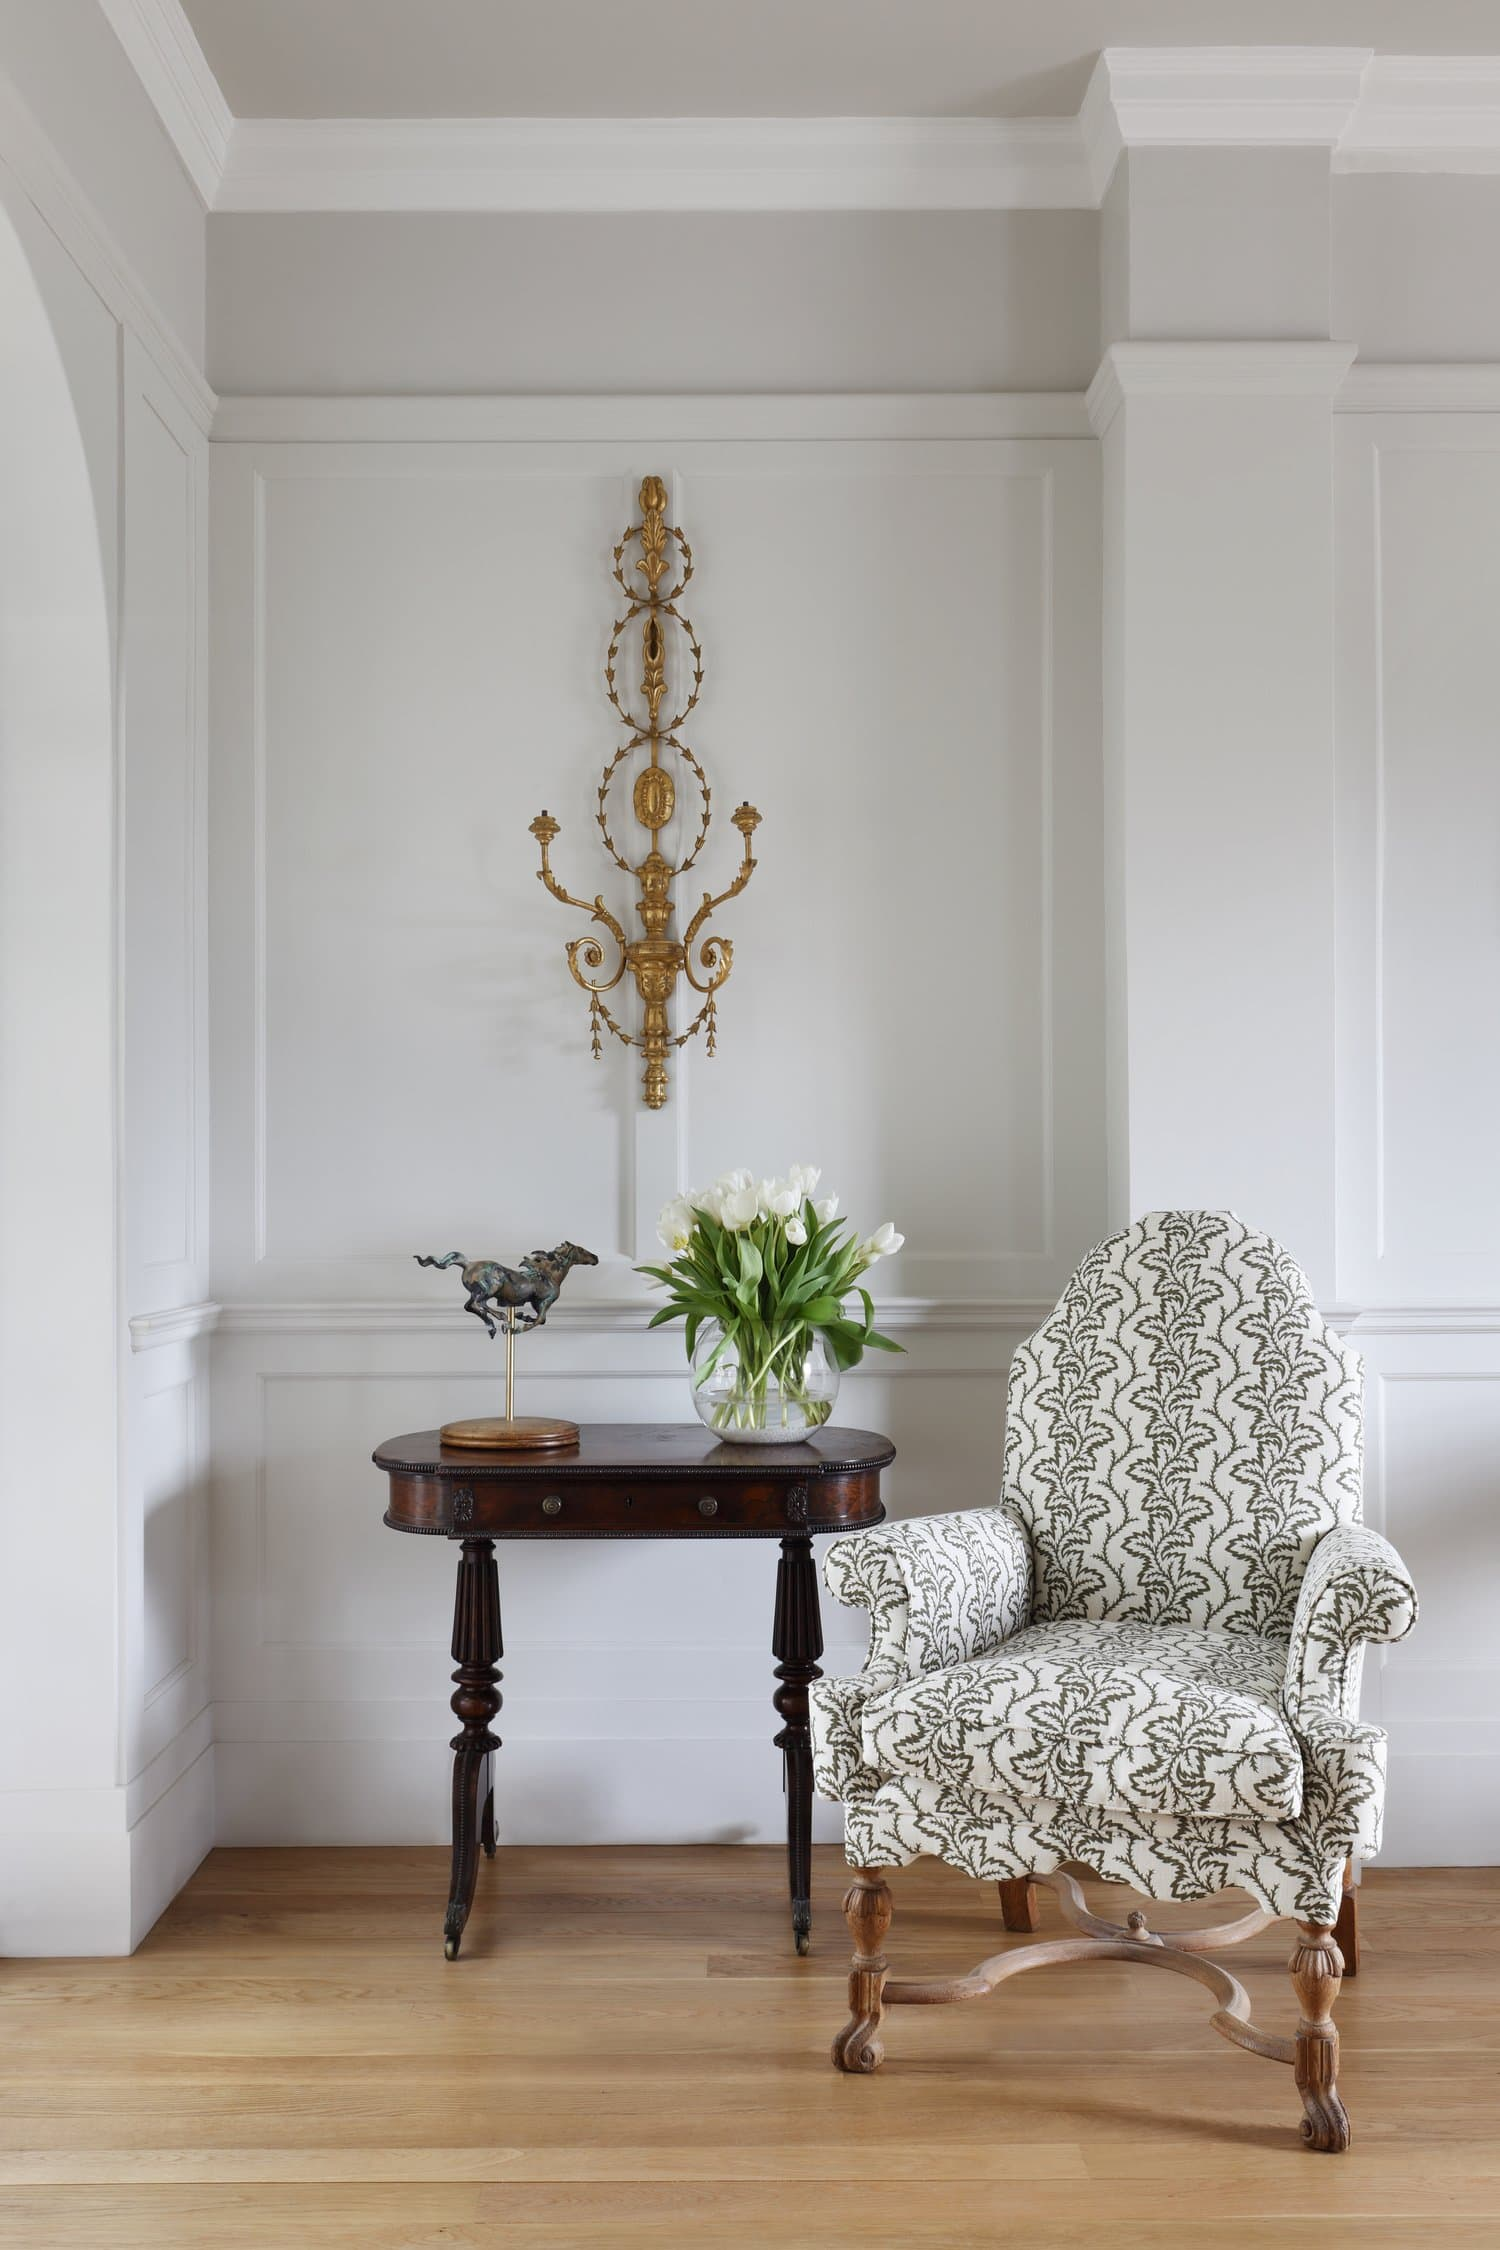 this is a hallway with a patterned chair and light grey walls